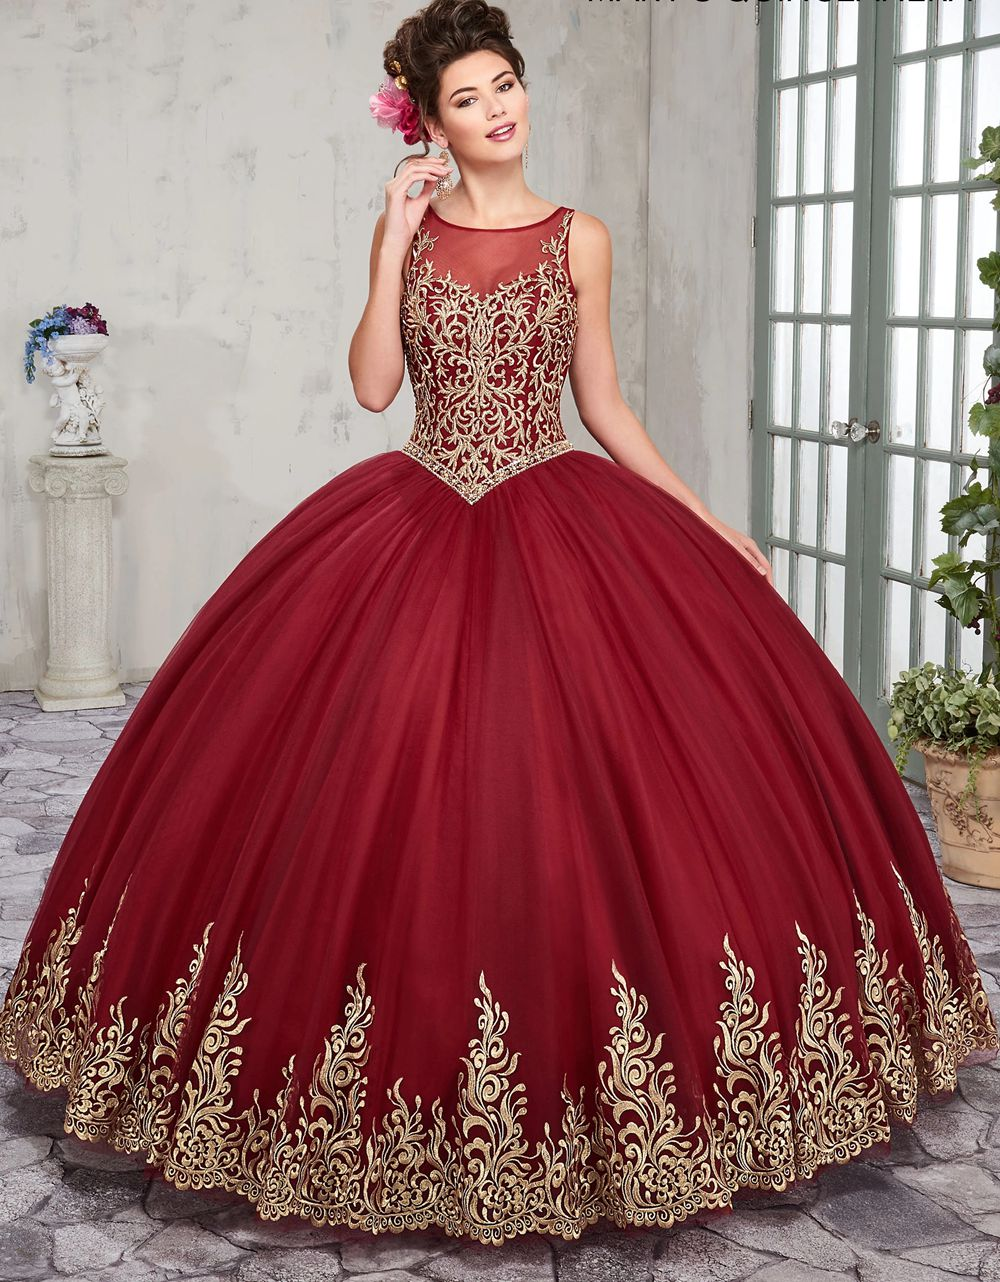 2019 Gold Embroidery Ball Gown Quinceanera <font><b>Dresses</b></font> Floor Length <font><b>Sweet</b></font> <font><b>16</b></font> <font><b>Dress</b></font> Custom Color Size image